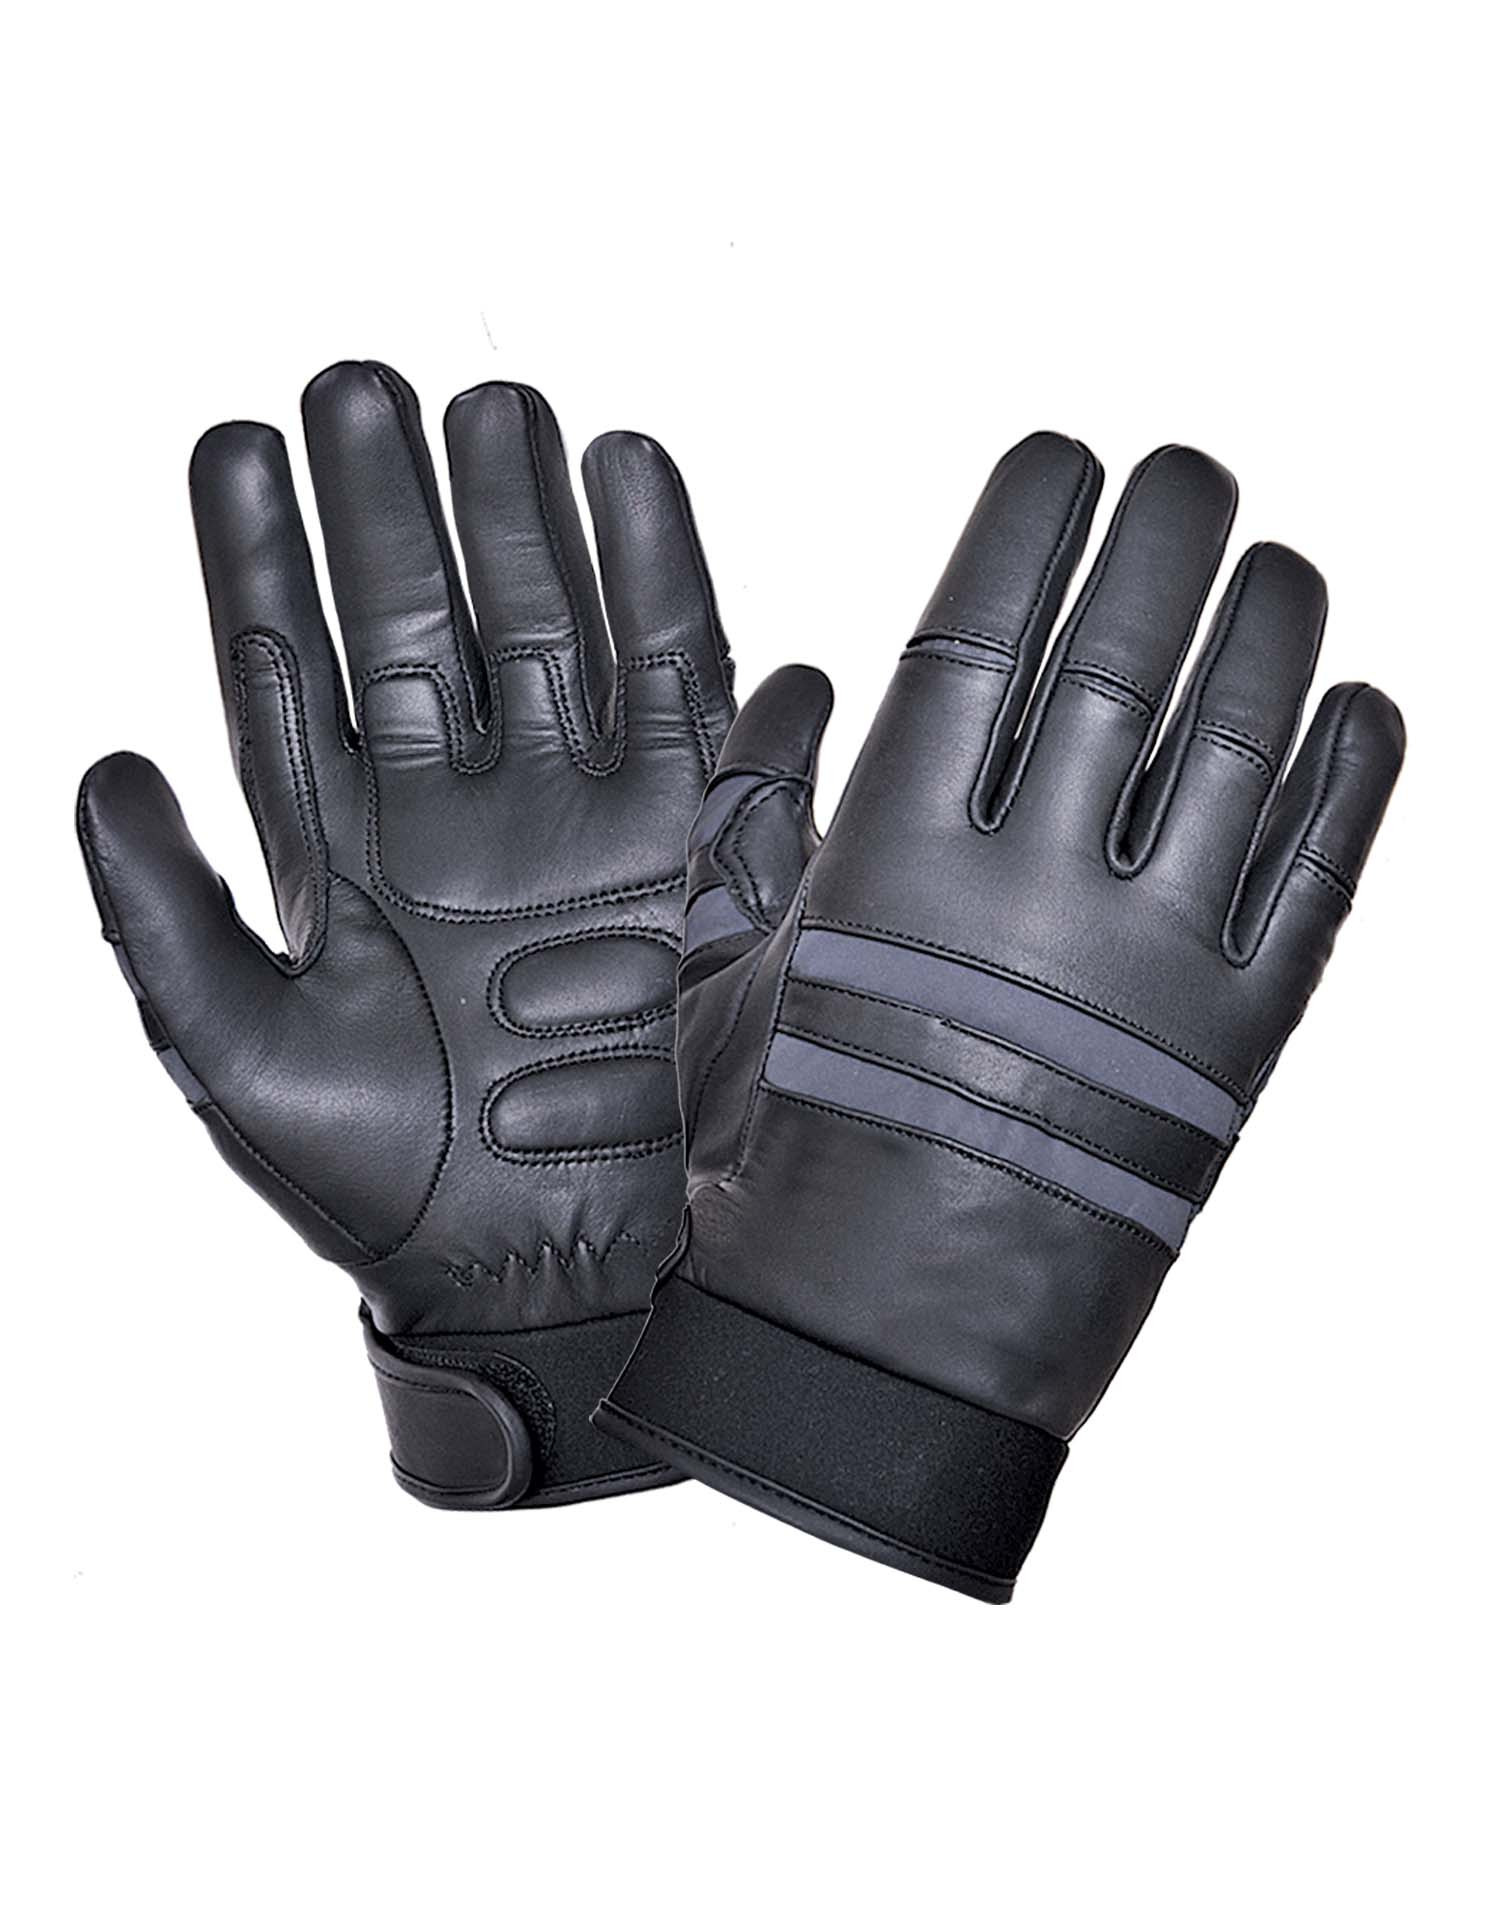 Black Full Finger Leather Gloves, Gel palm, Reflective (Size: Small)